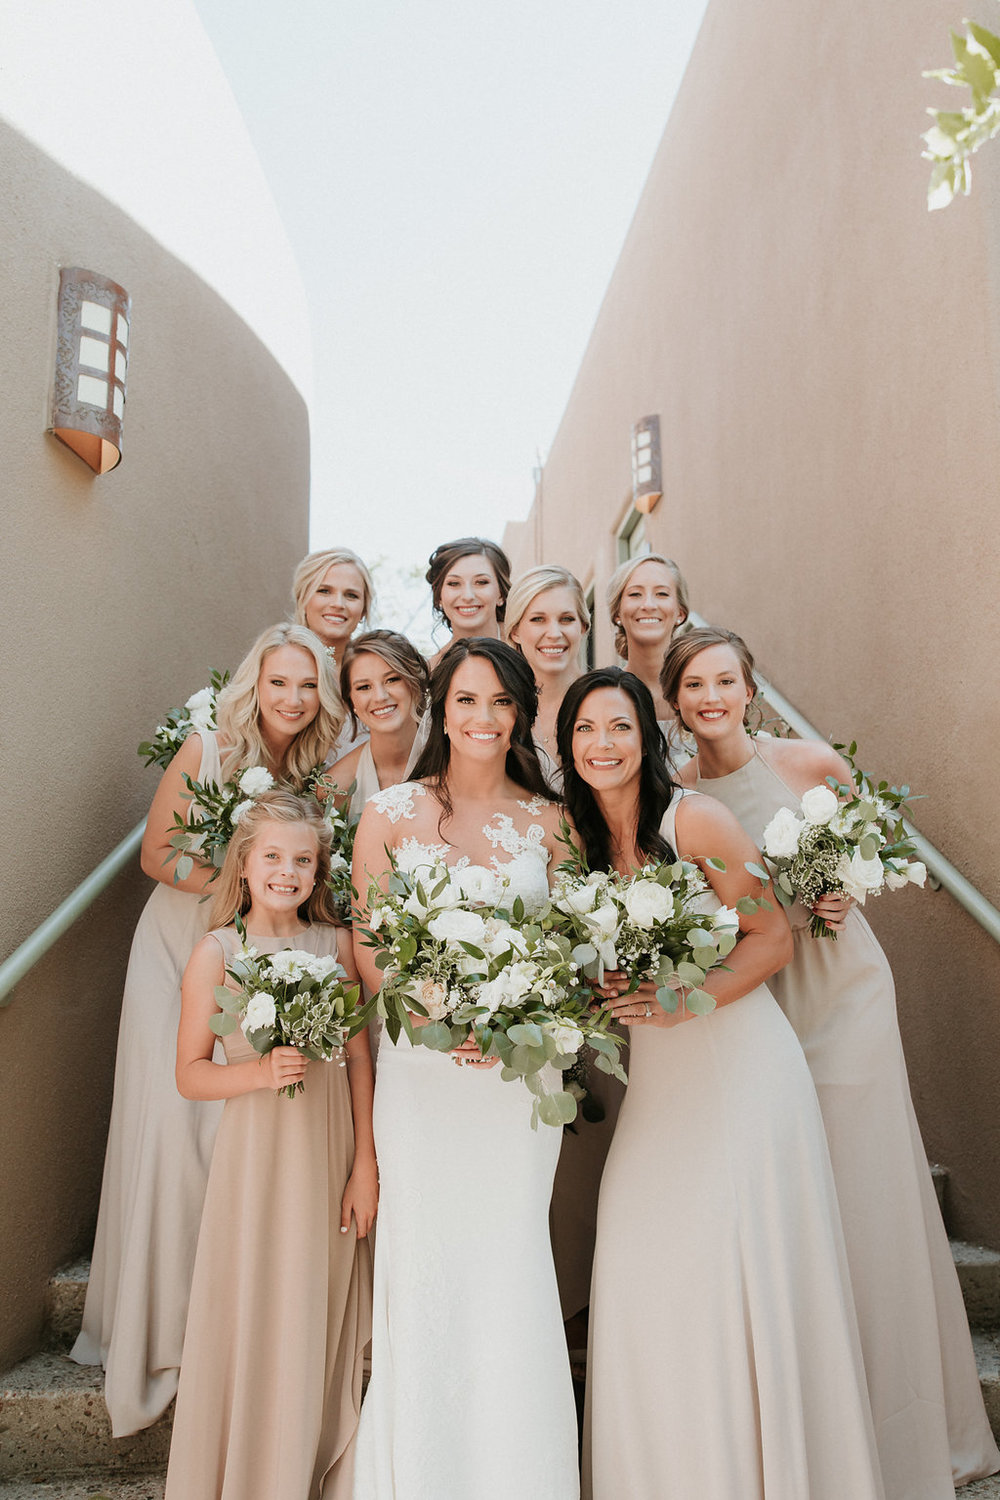 Bridal party makeup by Betty Rose in Albuquerque.